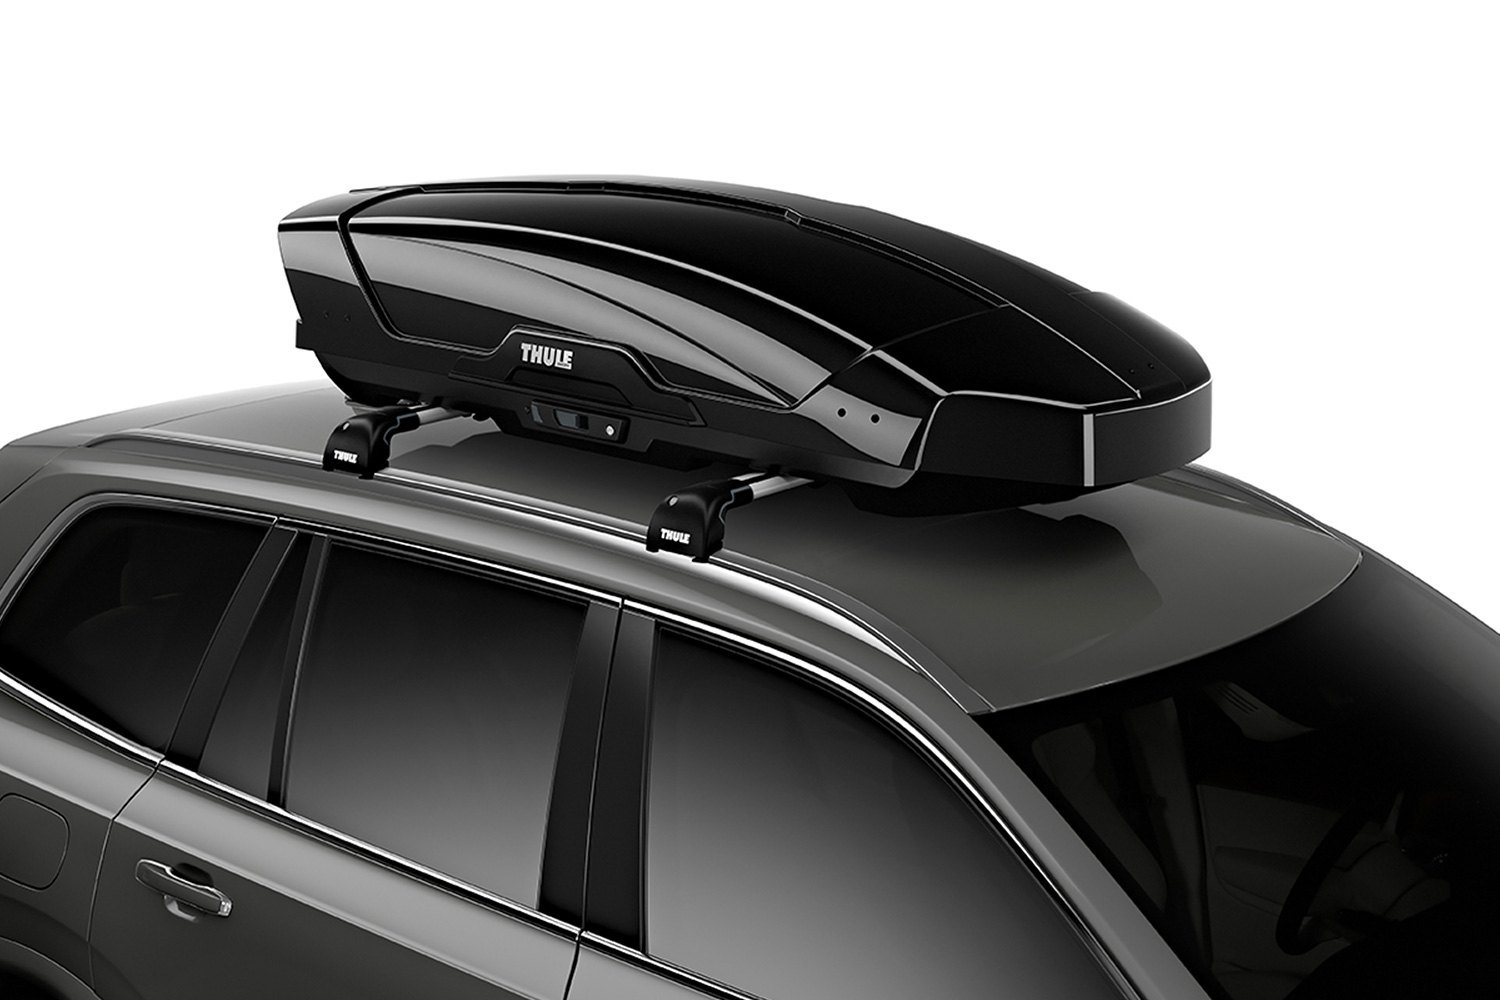 thule 6298b motion xt black glossy cargo box 84 5 l x 36 w x 17 h 18 cu ft. Black Bedroom Furniture Sets. Home Design Ideas